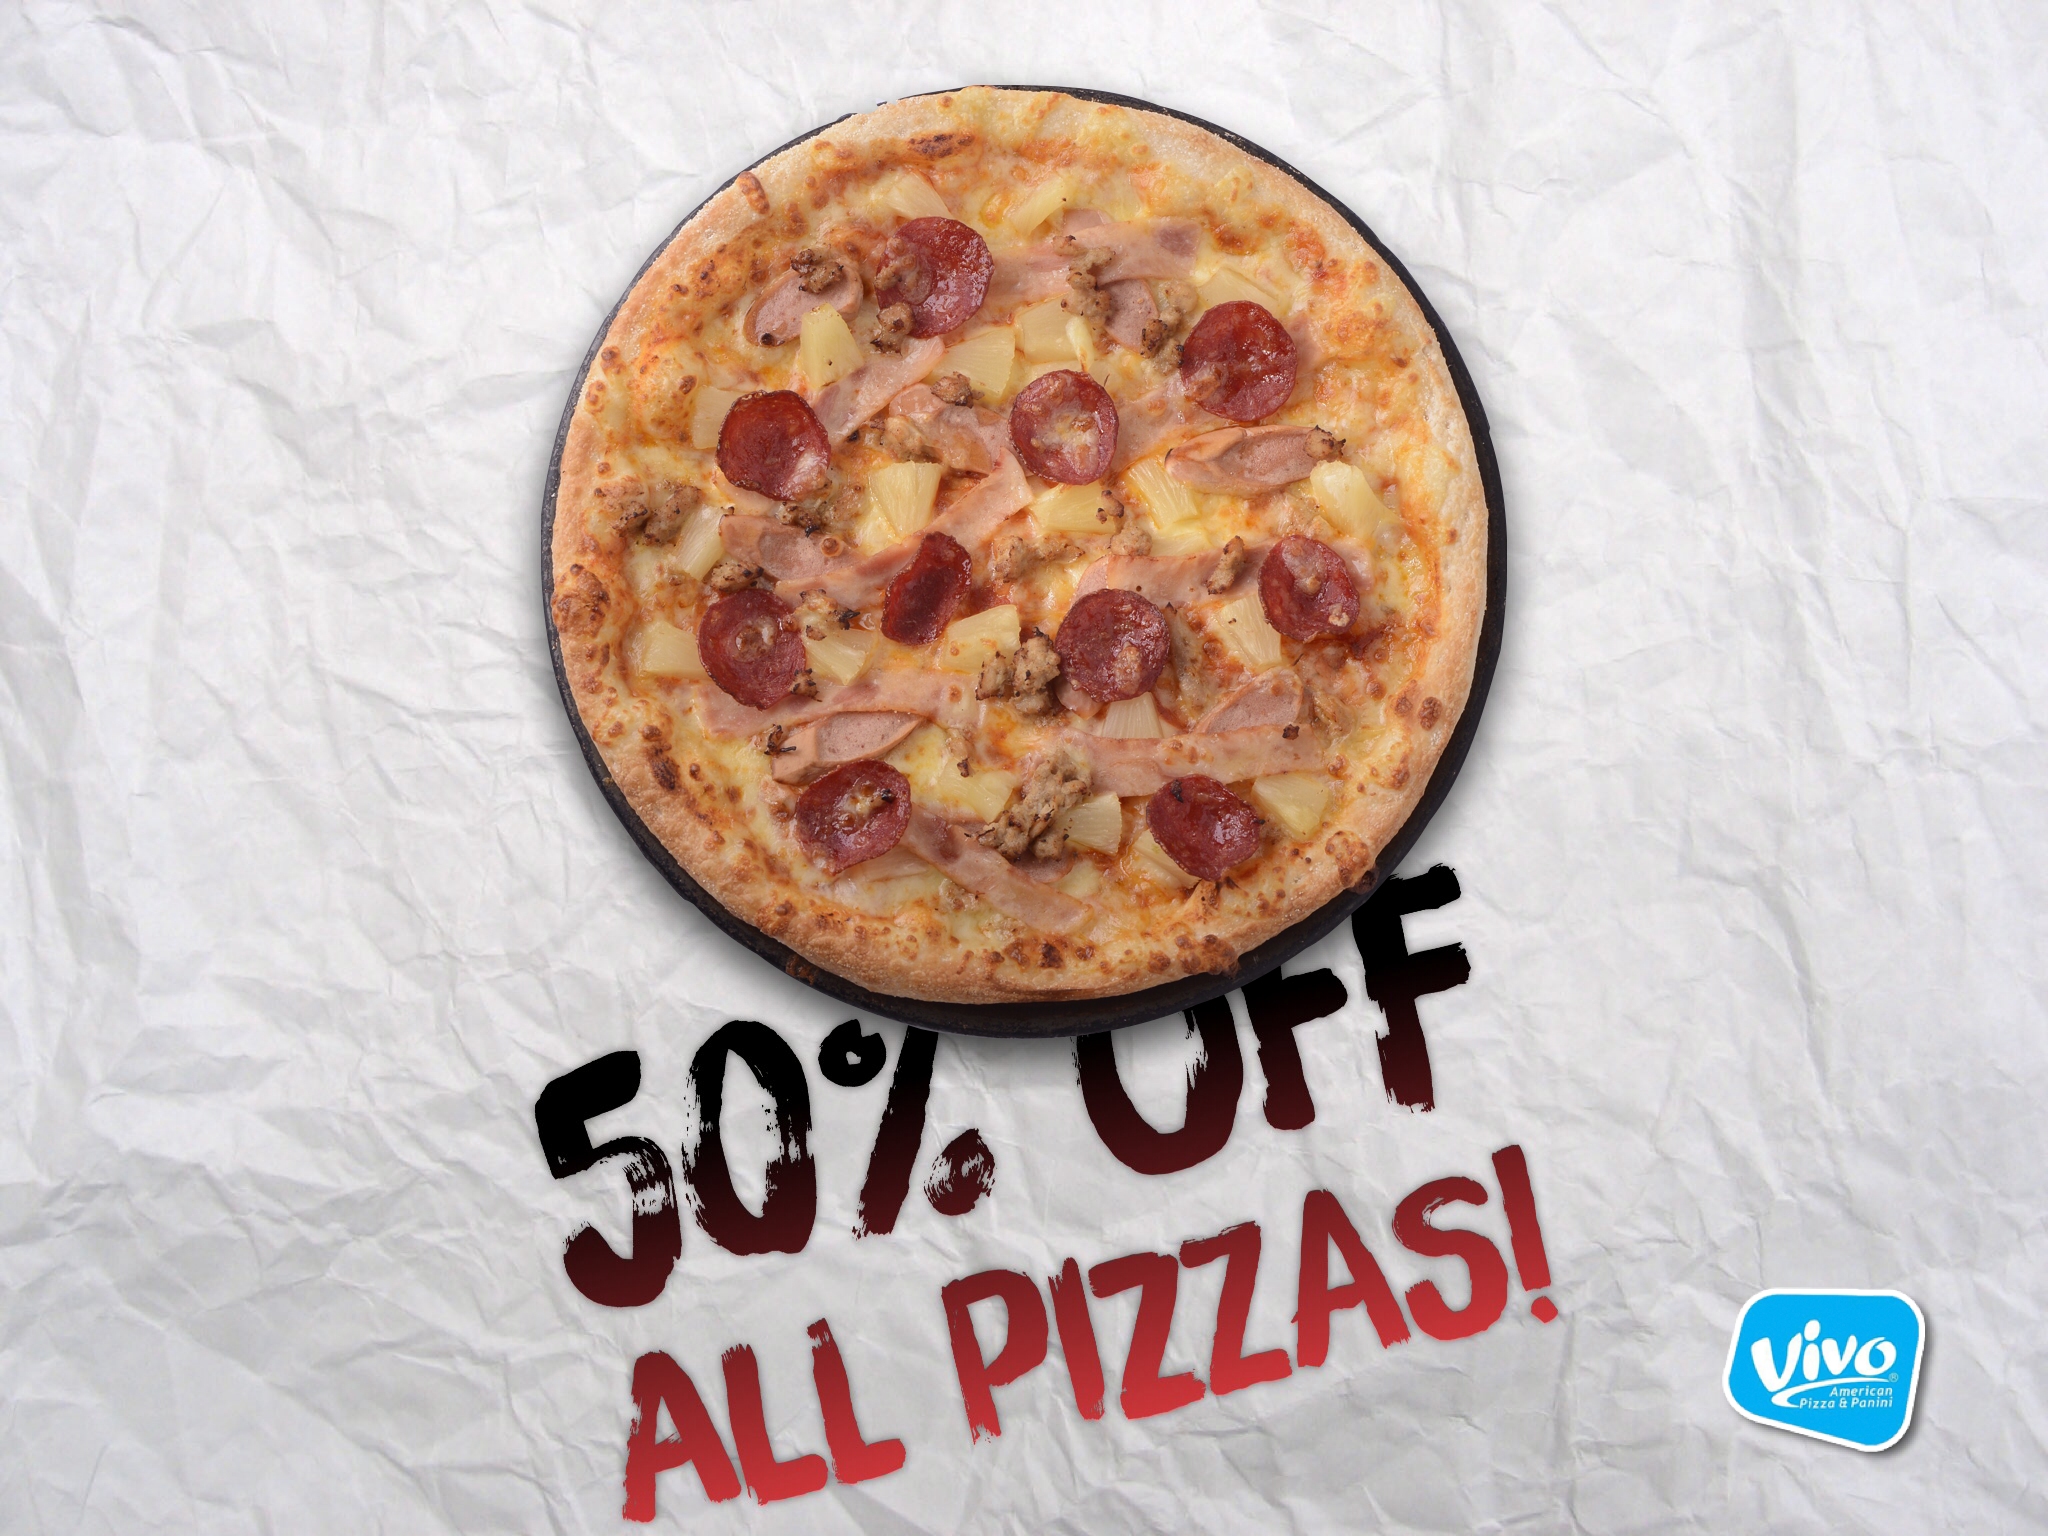 50% off all pizzas